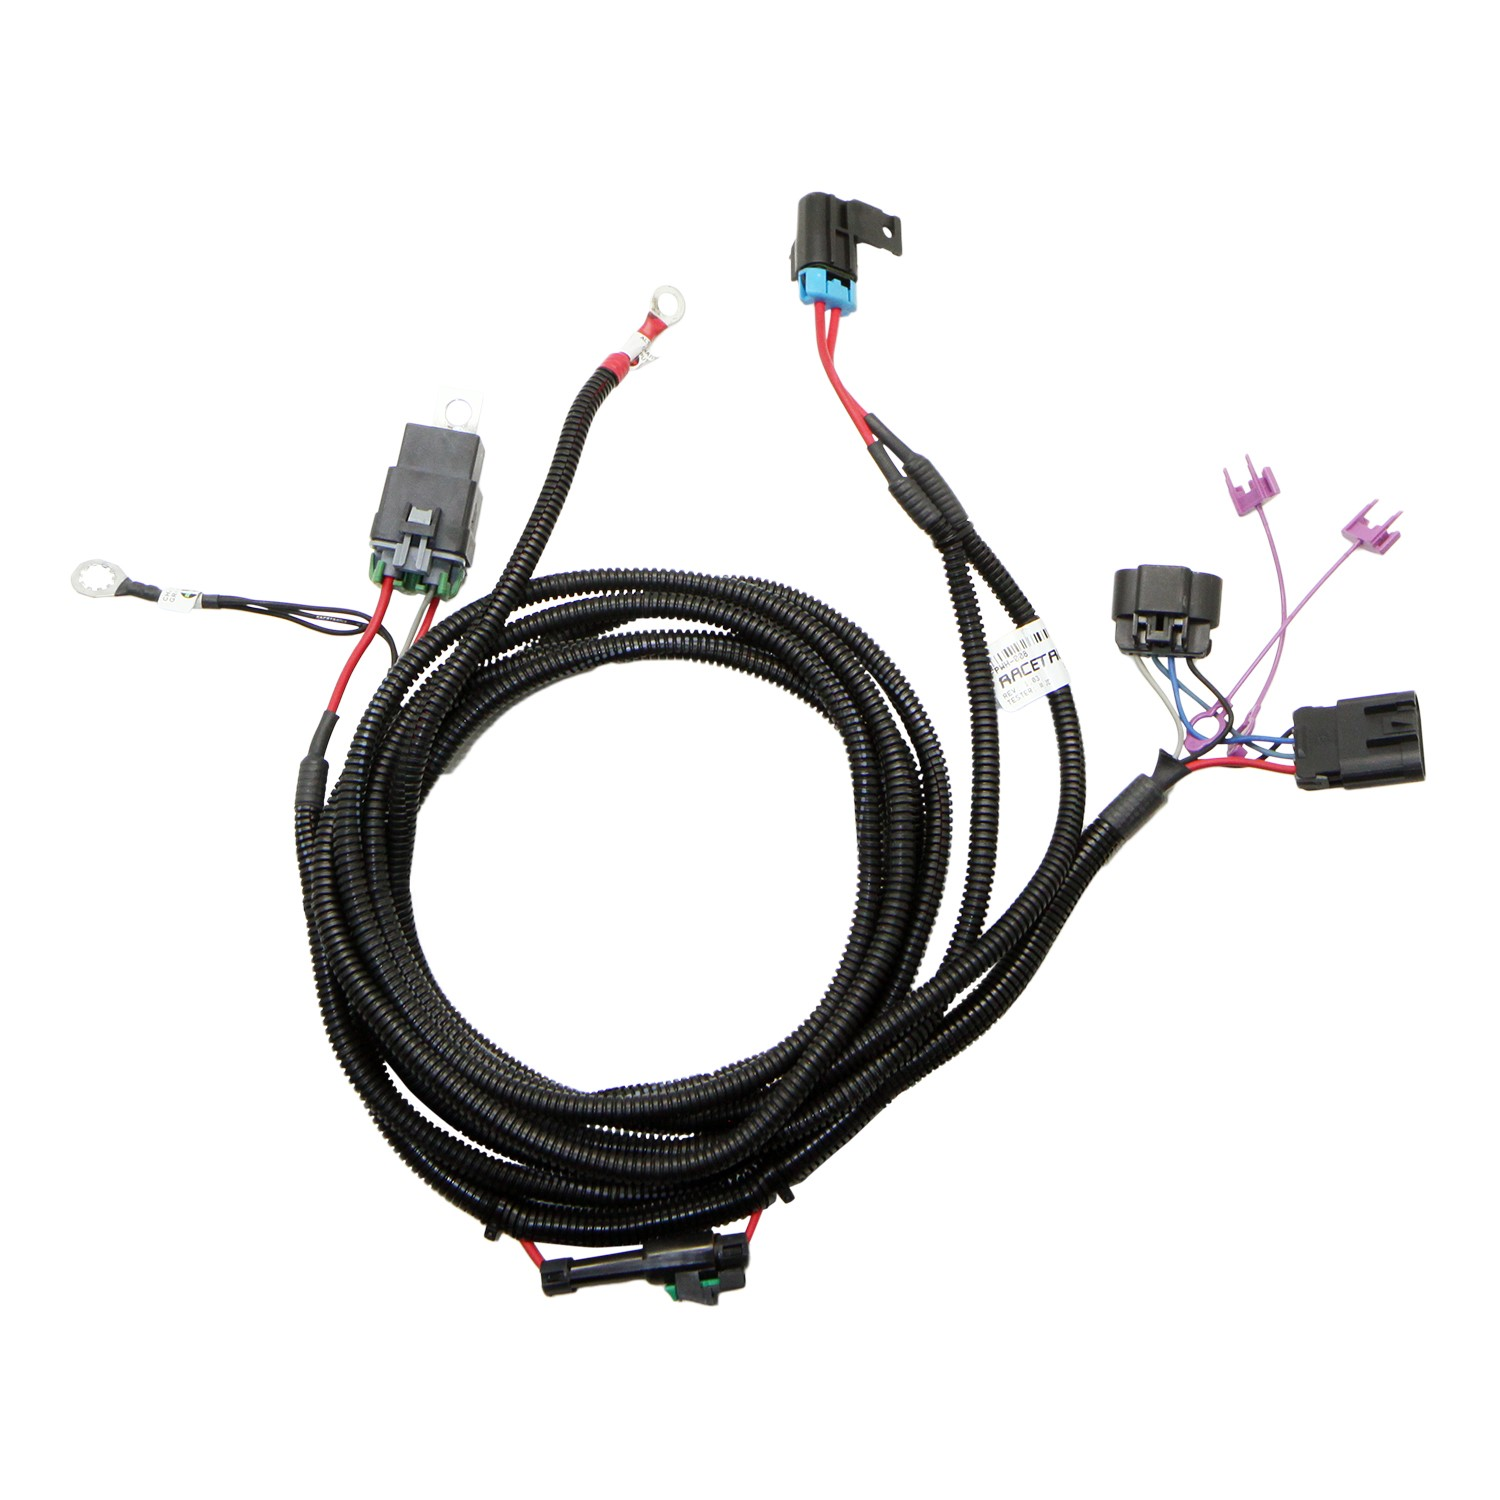 c56 fuel pump wiring harness  fpwh